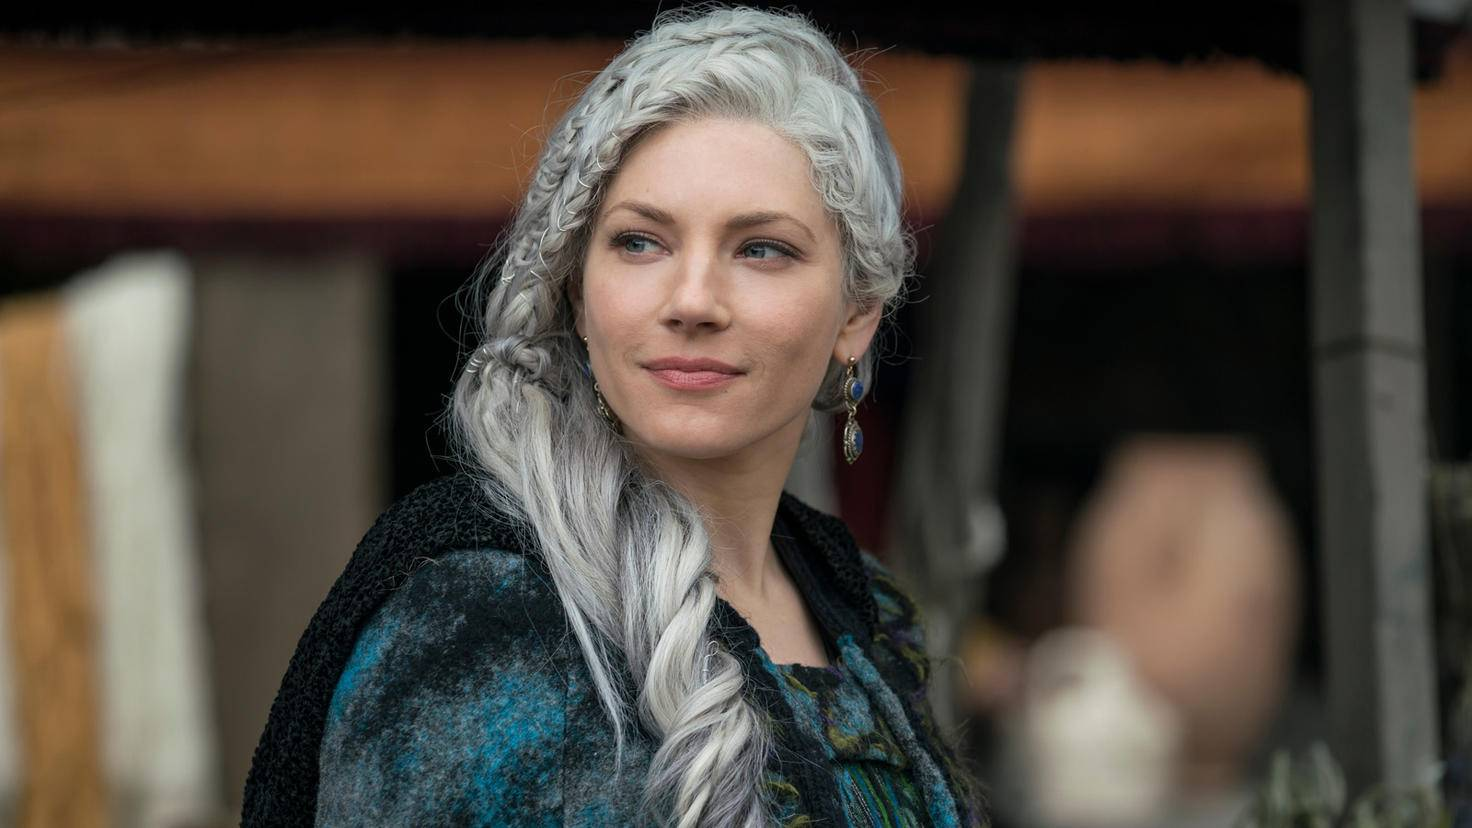 Vikings Katheryn Winnick als Lagertha